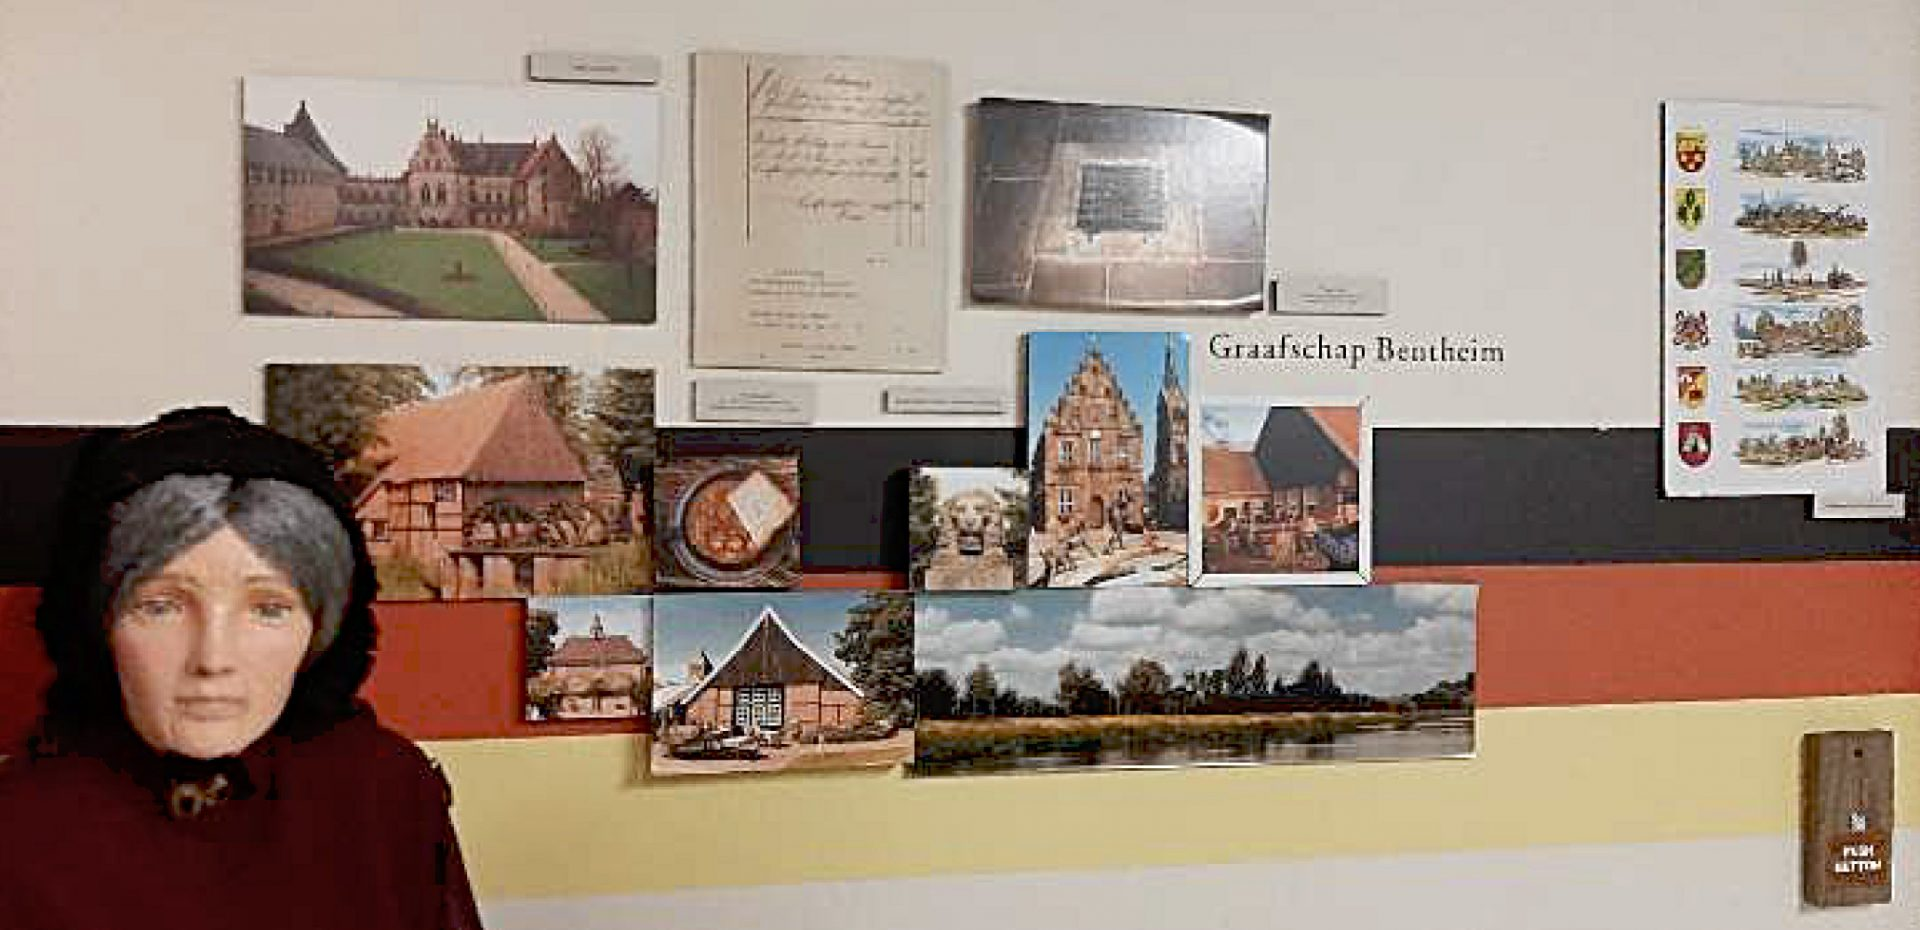 Photograph of museum exhibit of mannequin, photographs, and documents in a heritage museum that the tour group from Grafschaft Benthim visited